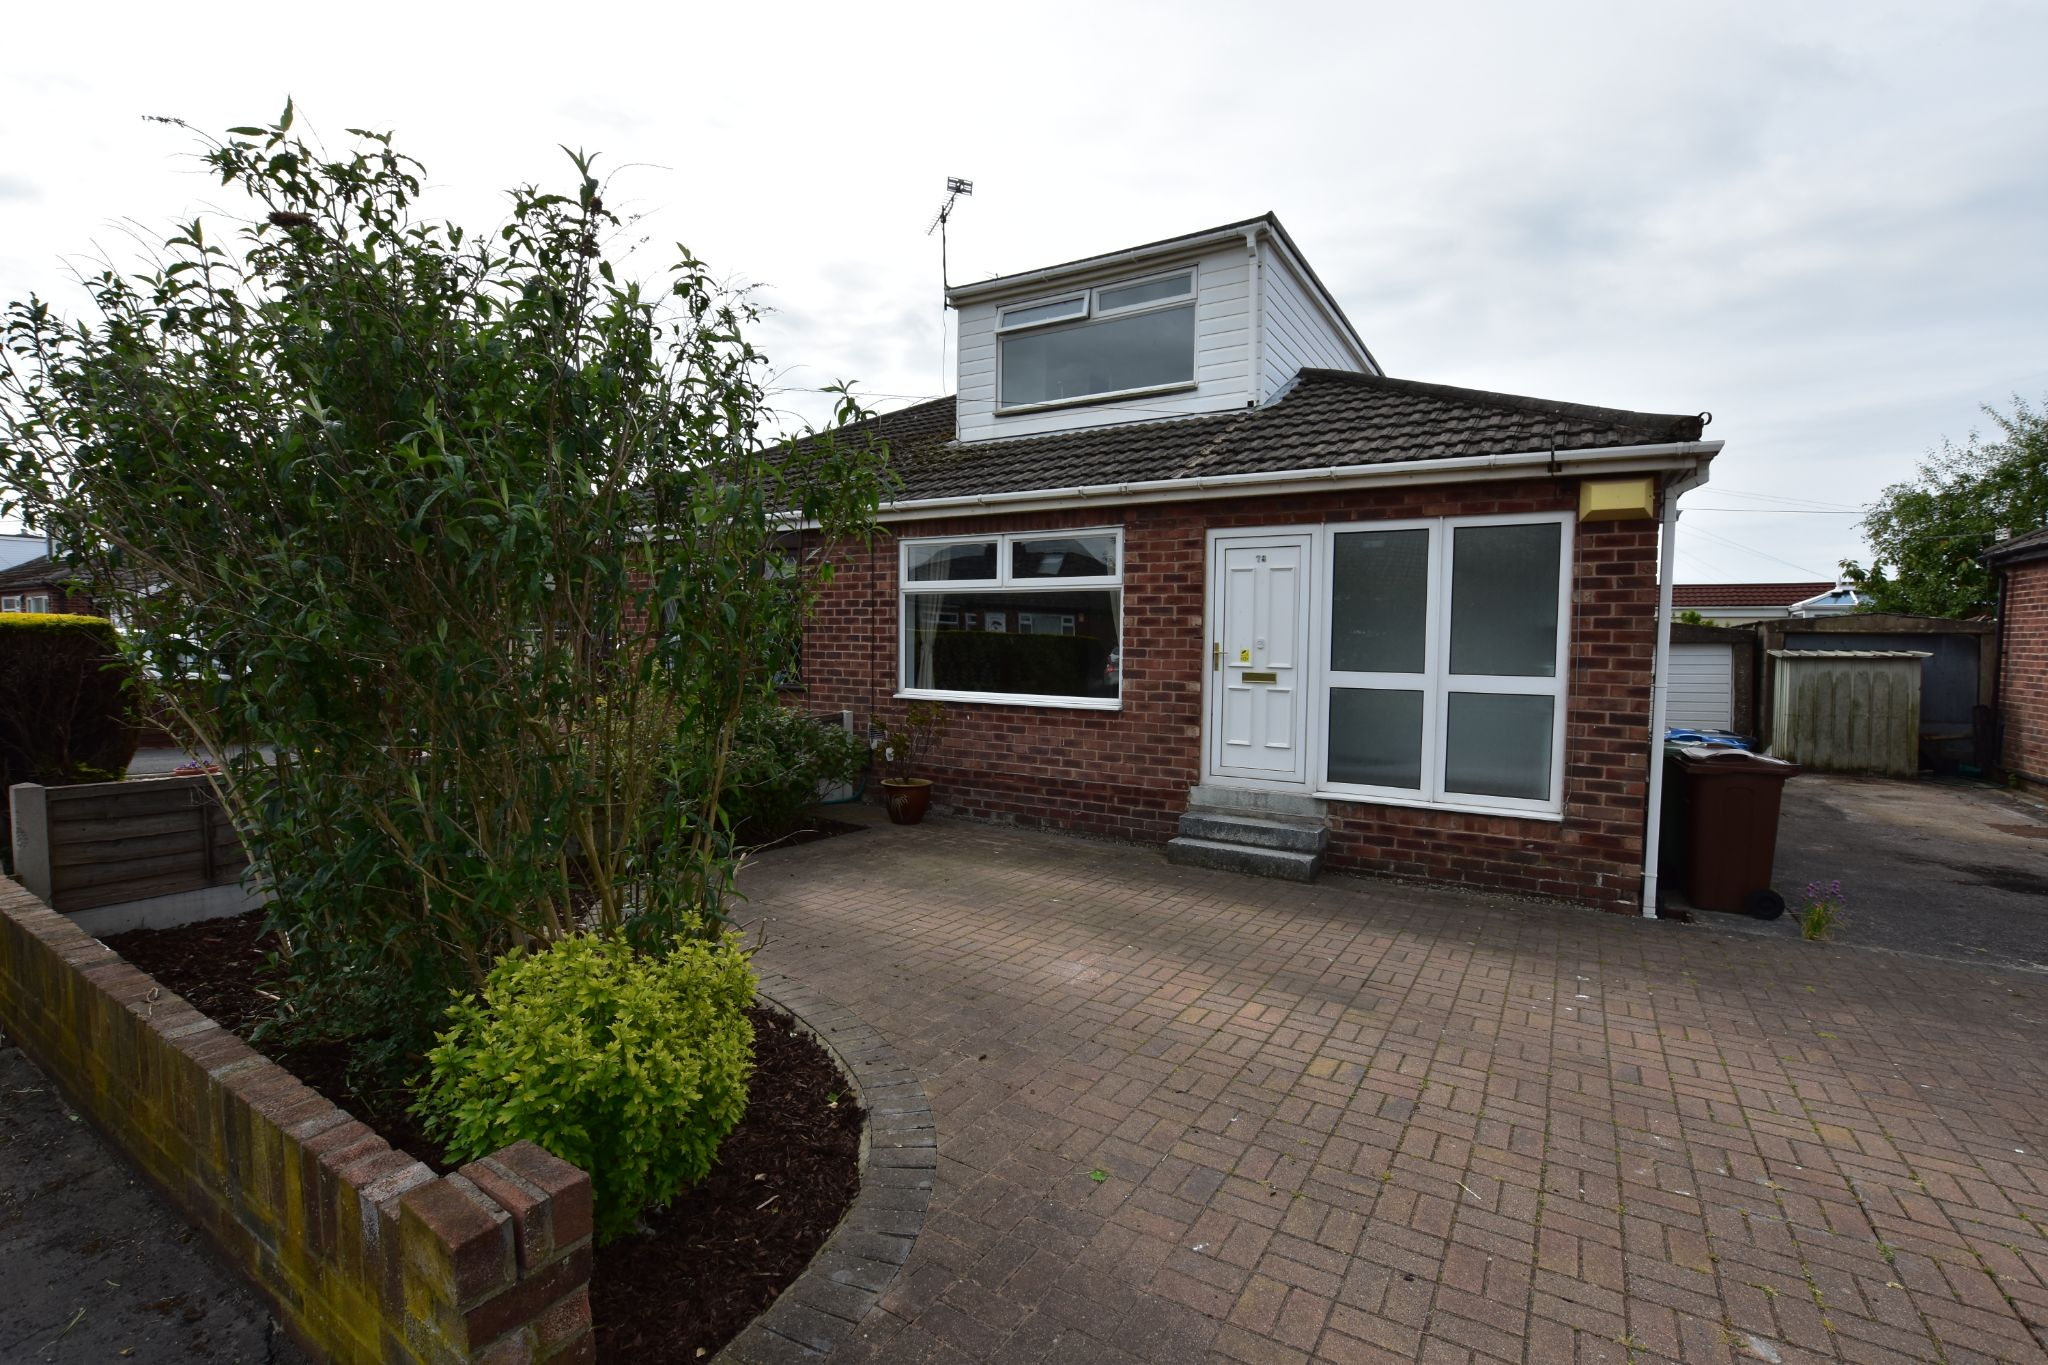 3 bedroom semi-detached bungalow To Let in Preston - Outside